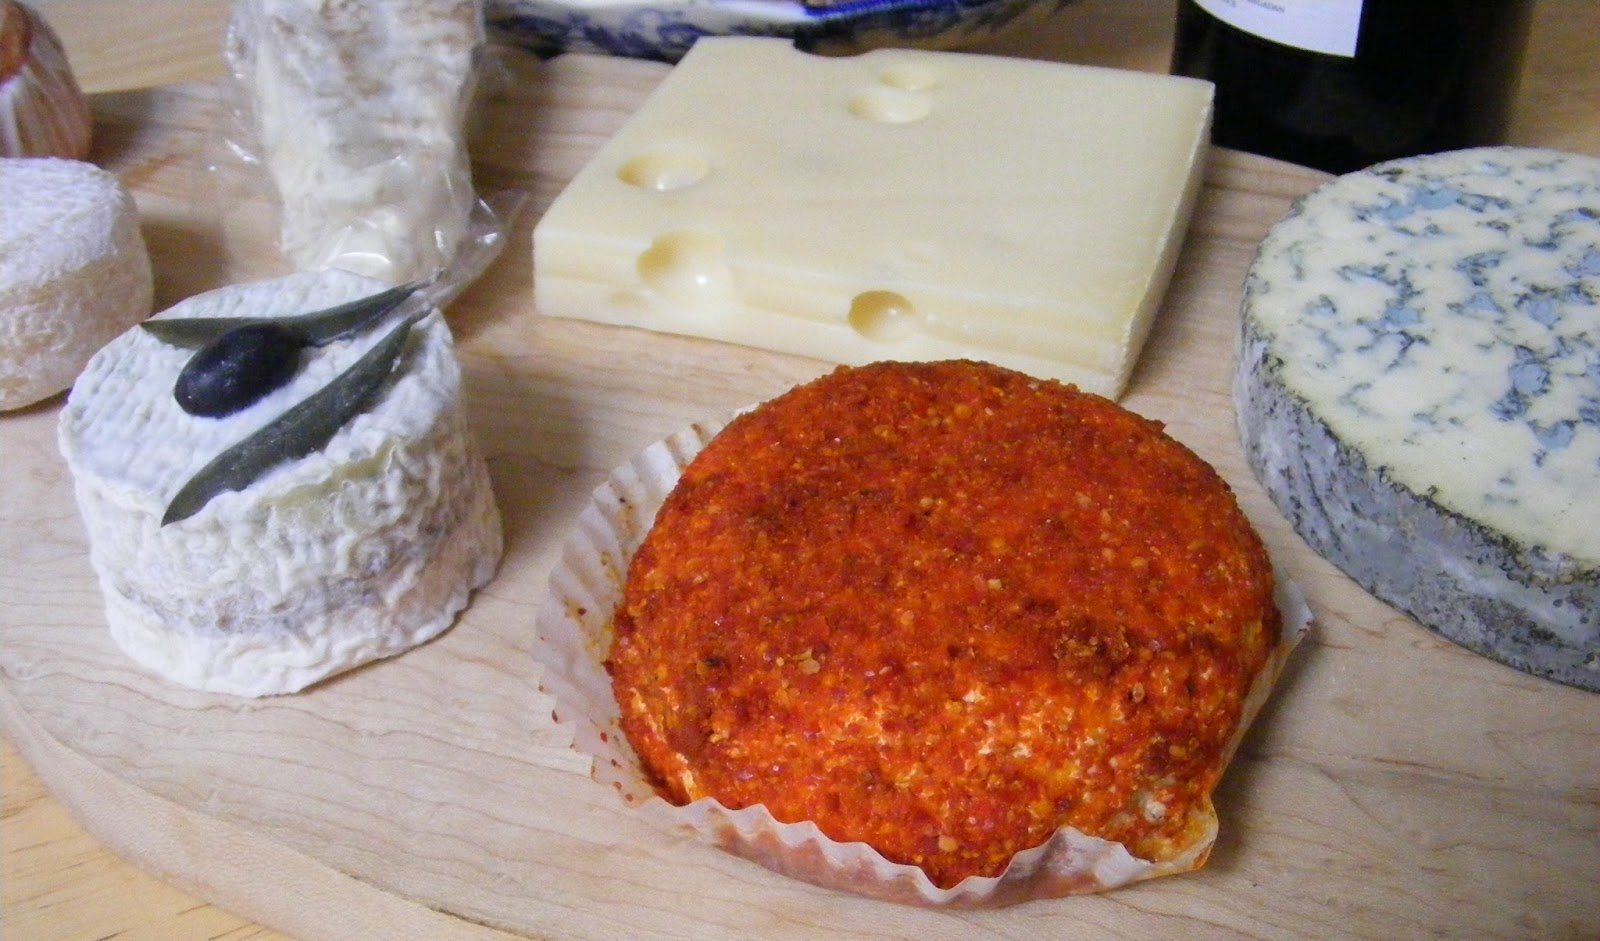 Sandy 39 s france it 39 s the cheese gromit - Can i eat port salut cheese when pregnant ...